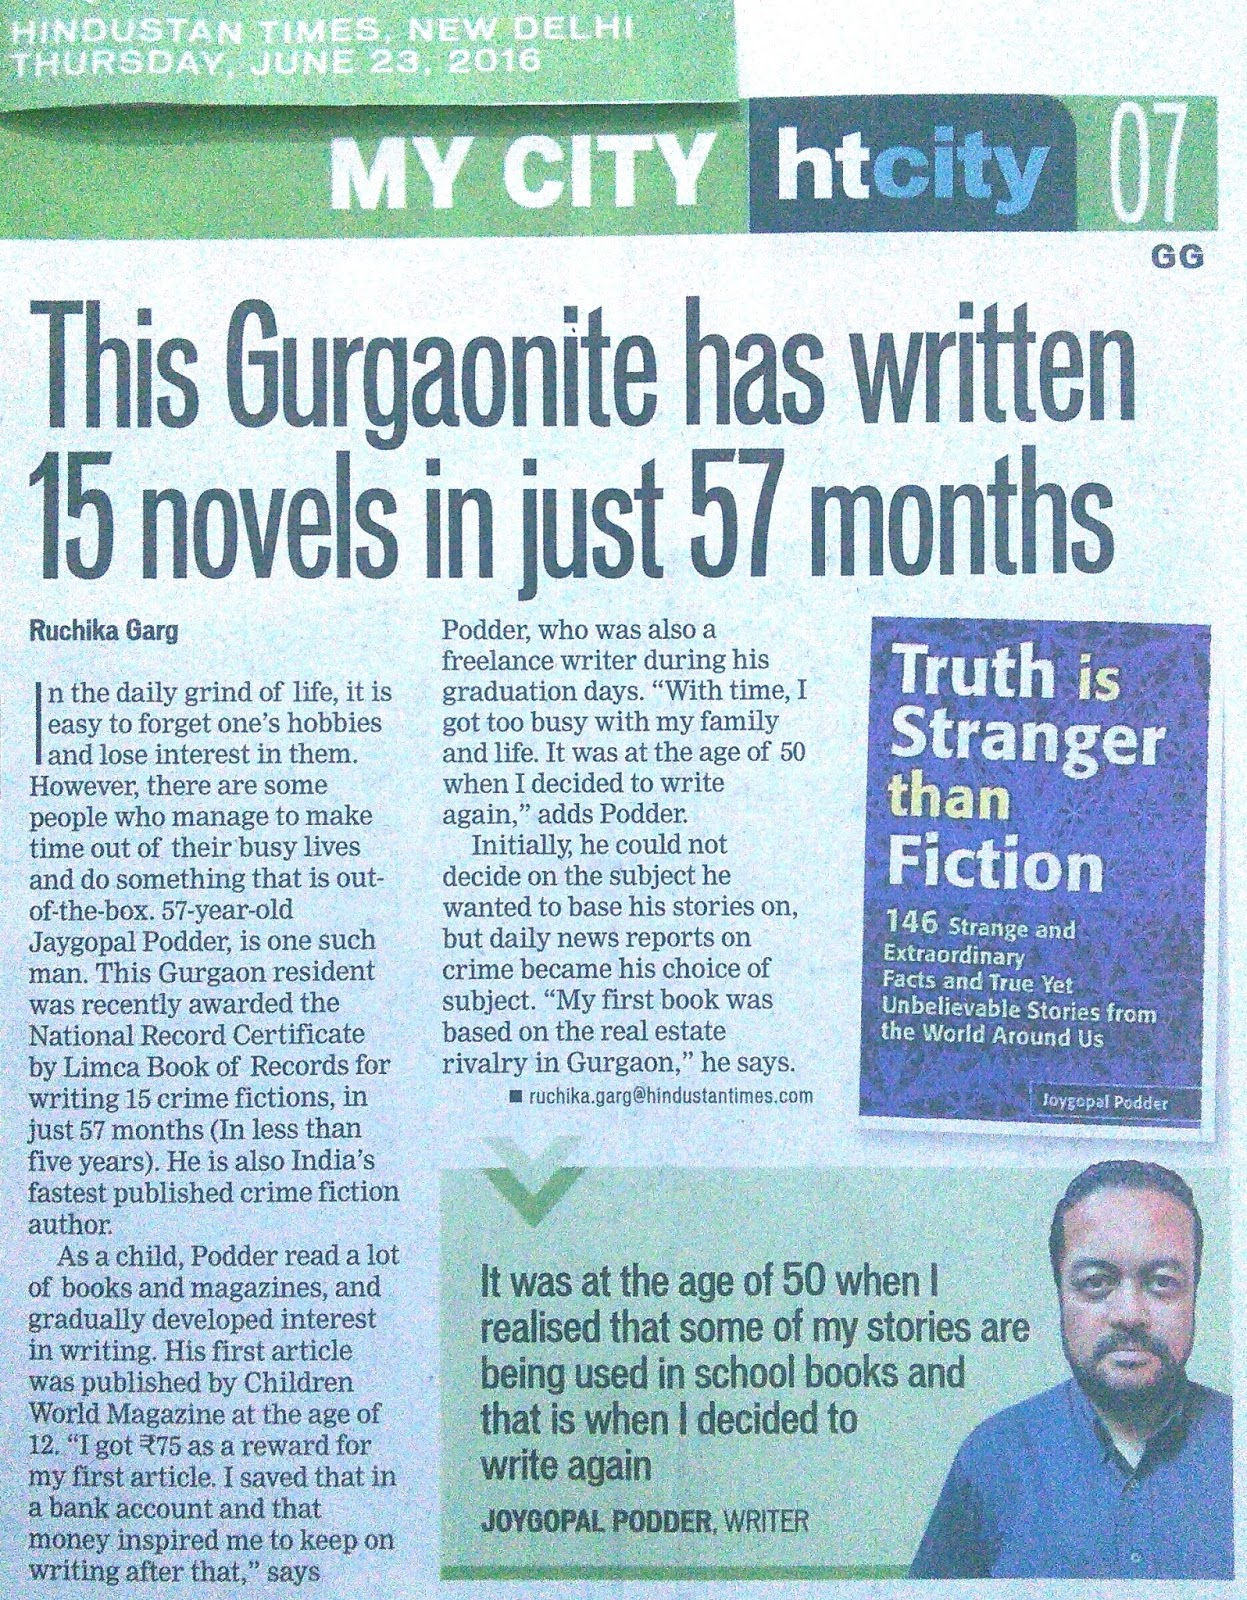 Strange, Interesting And Extraordinary Facts Compiled By Joygopal Podder